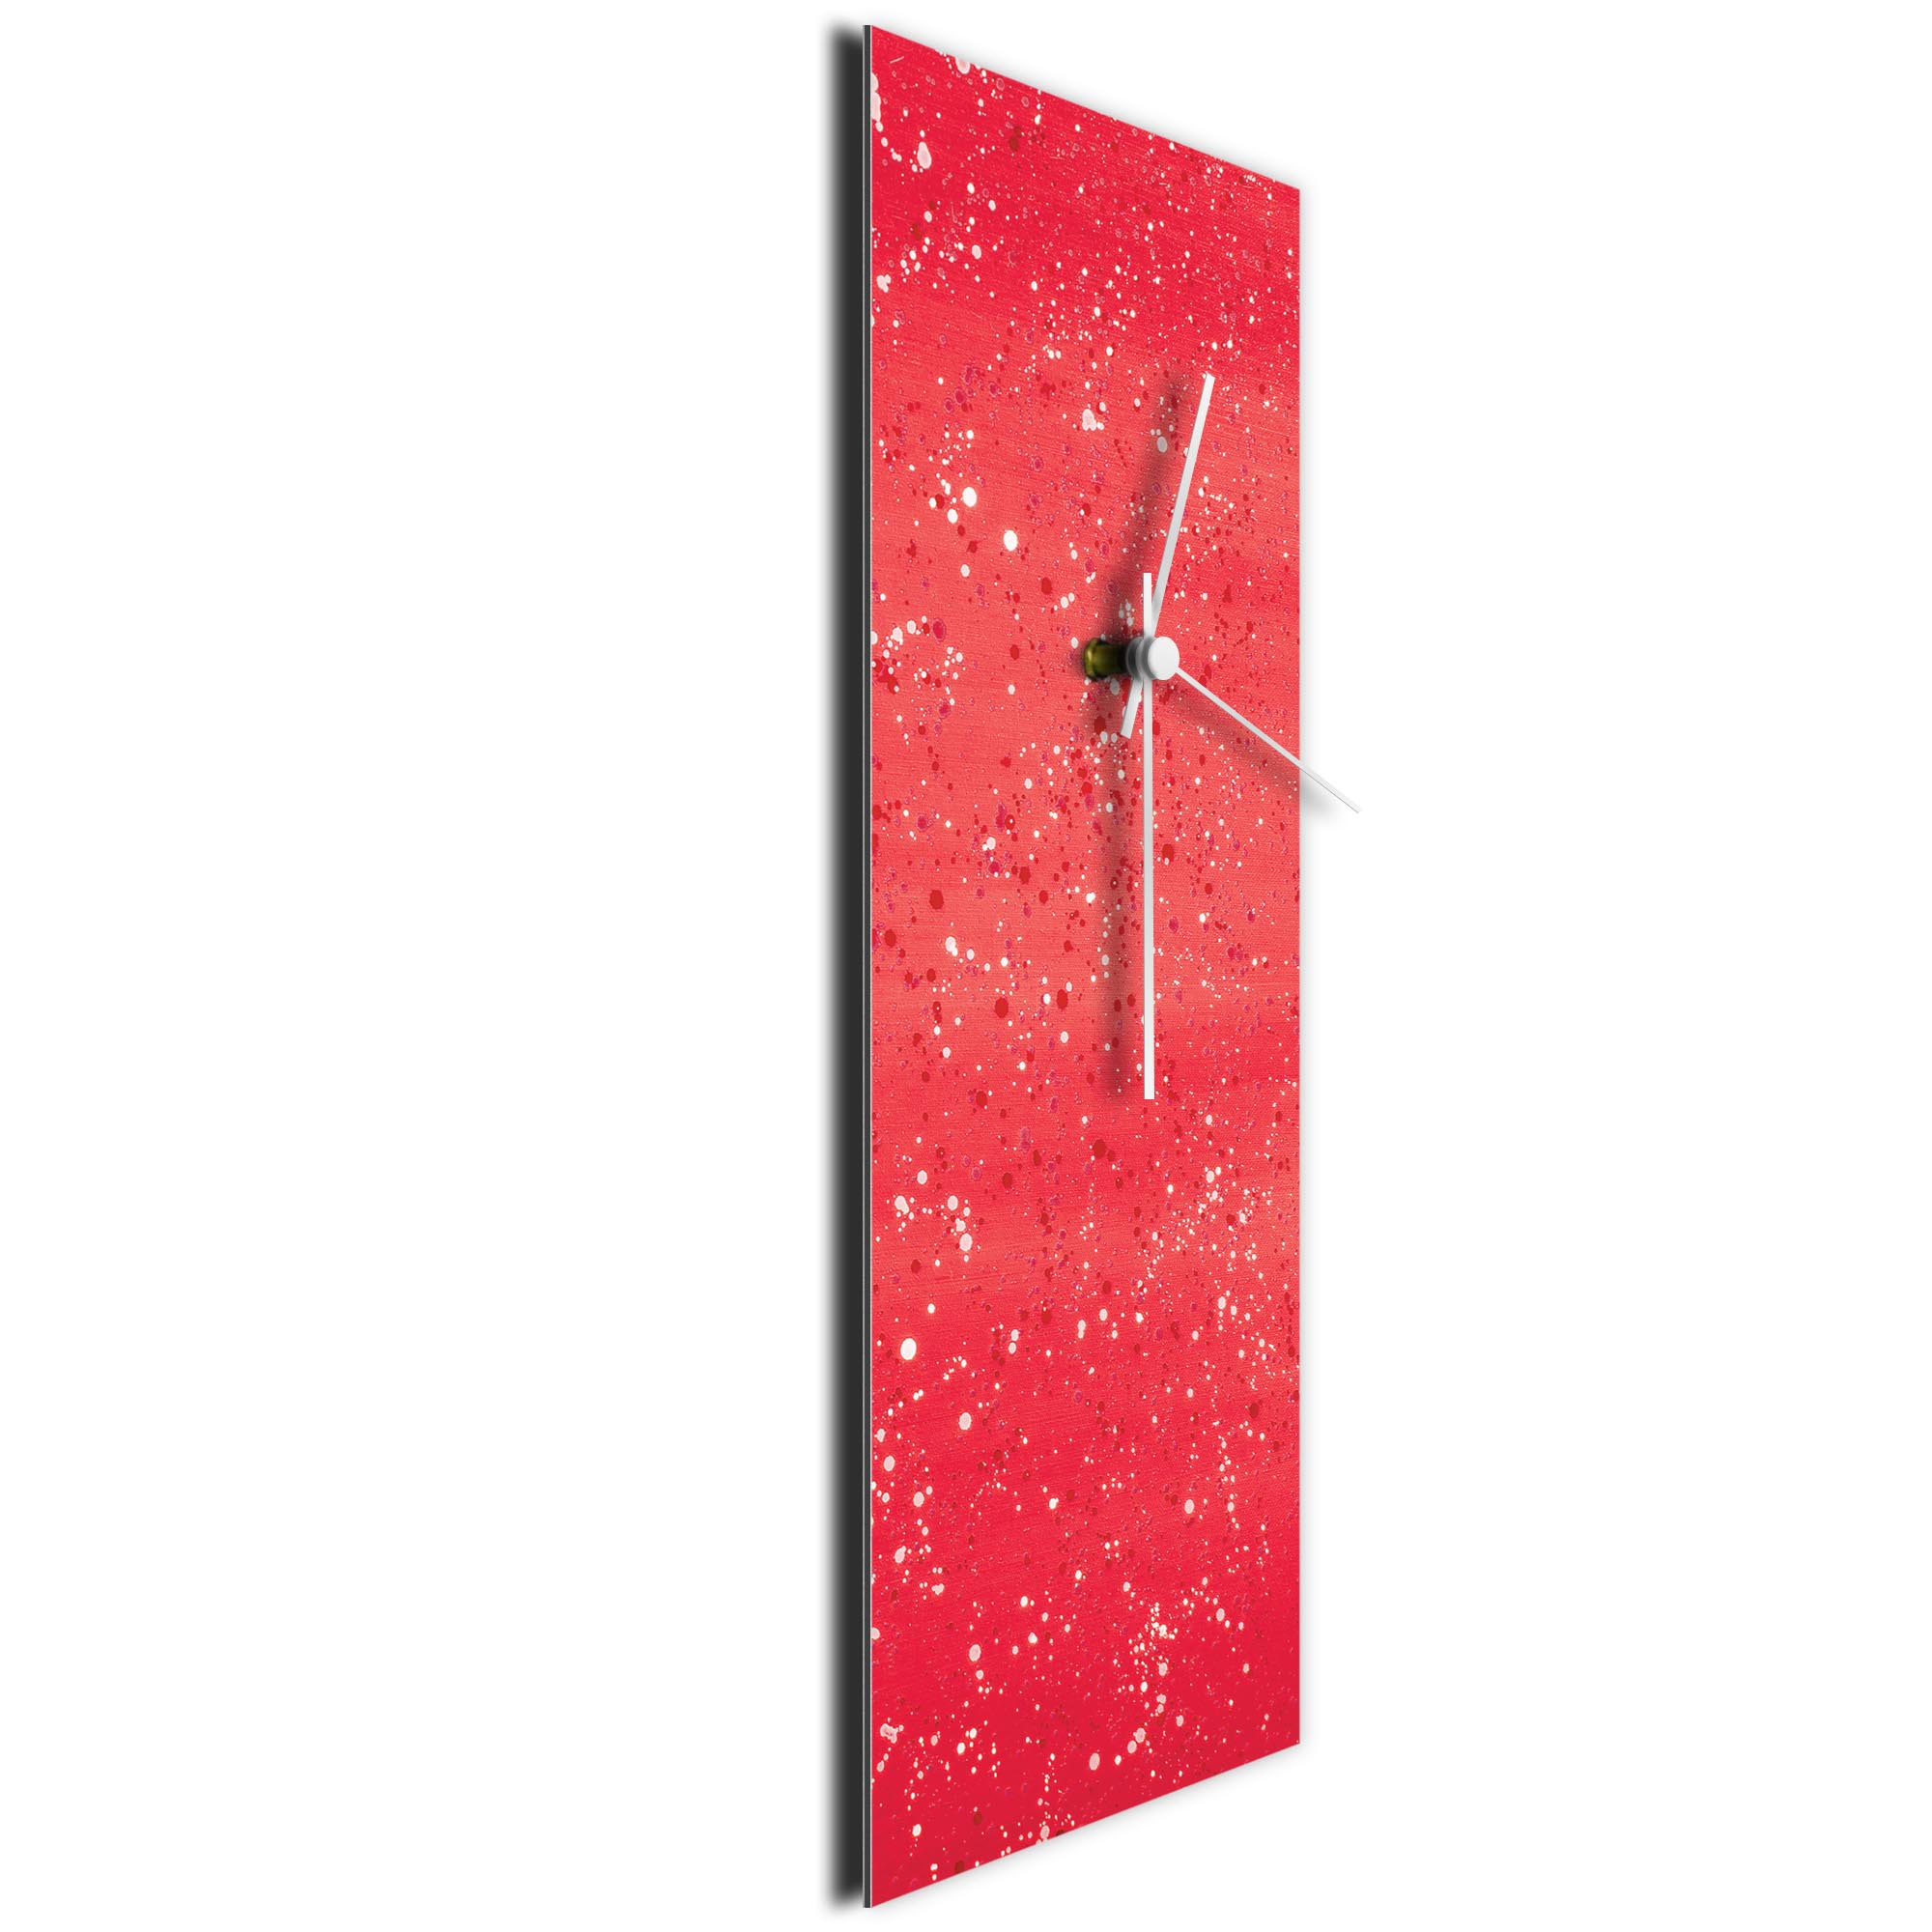 Red Flecked Clock Large by Mendo Vasilevski - Urban Abstract Home Decor - Image 3